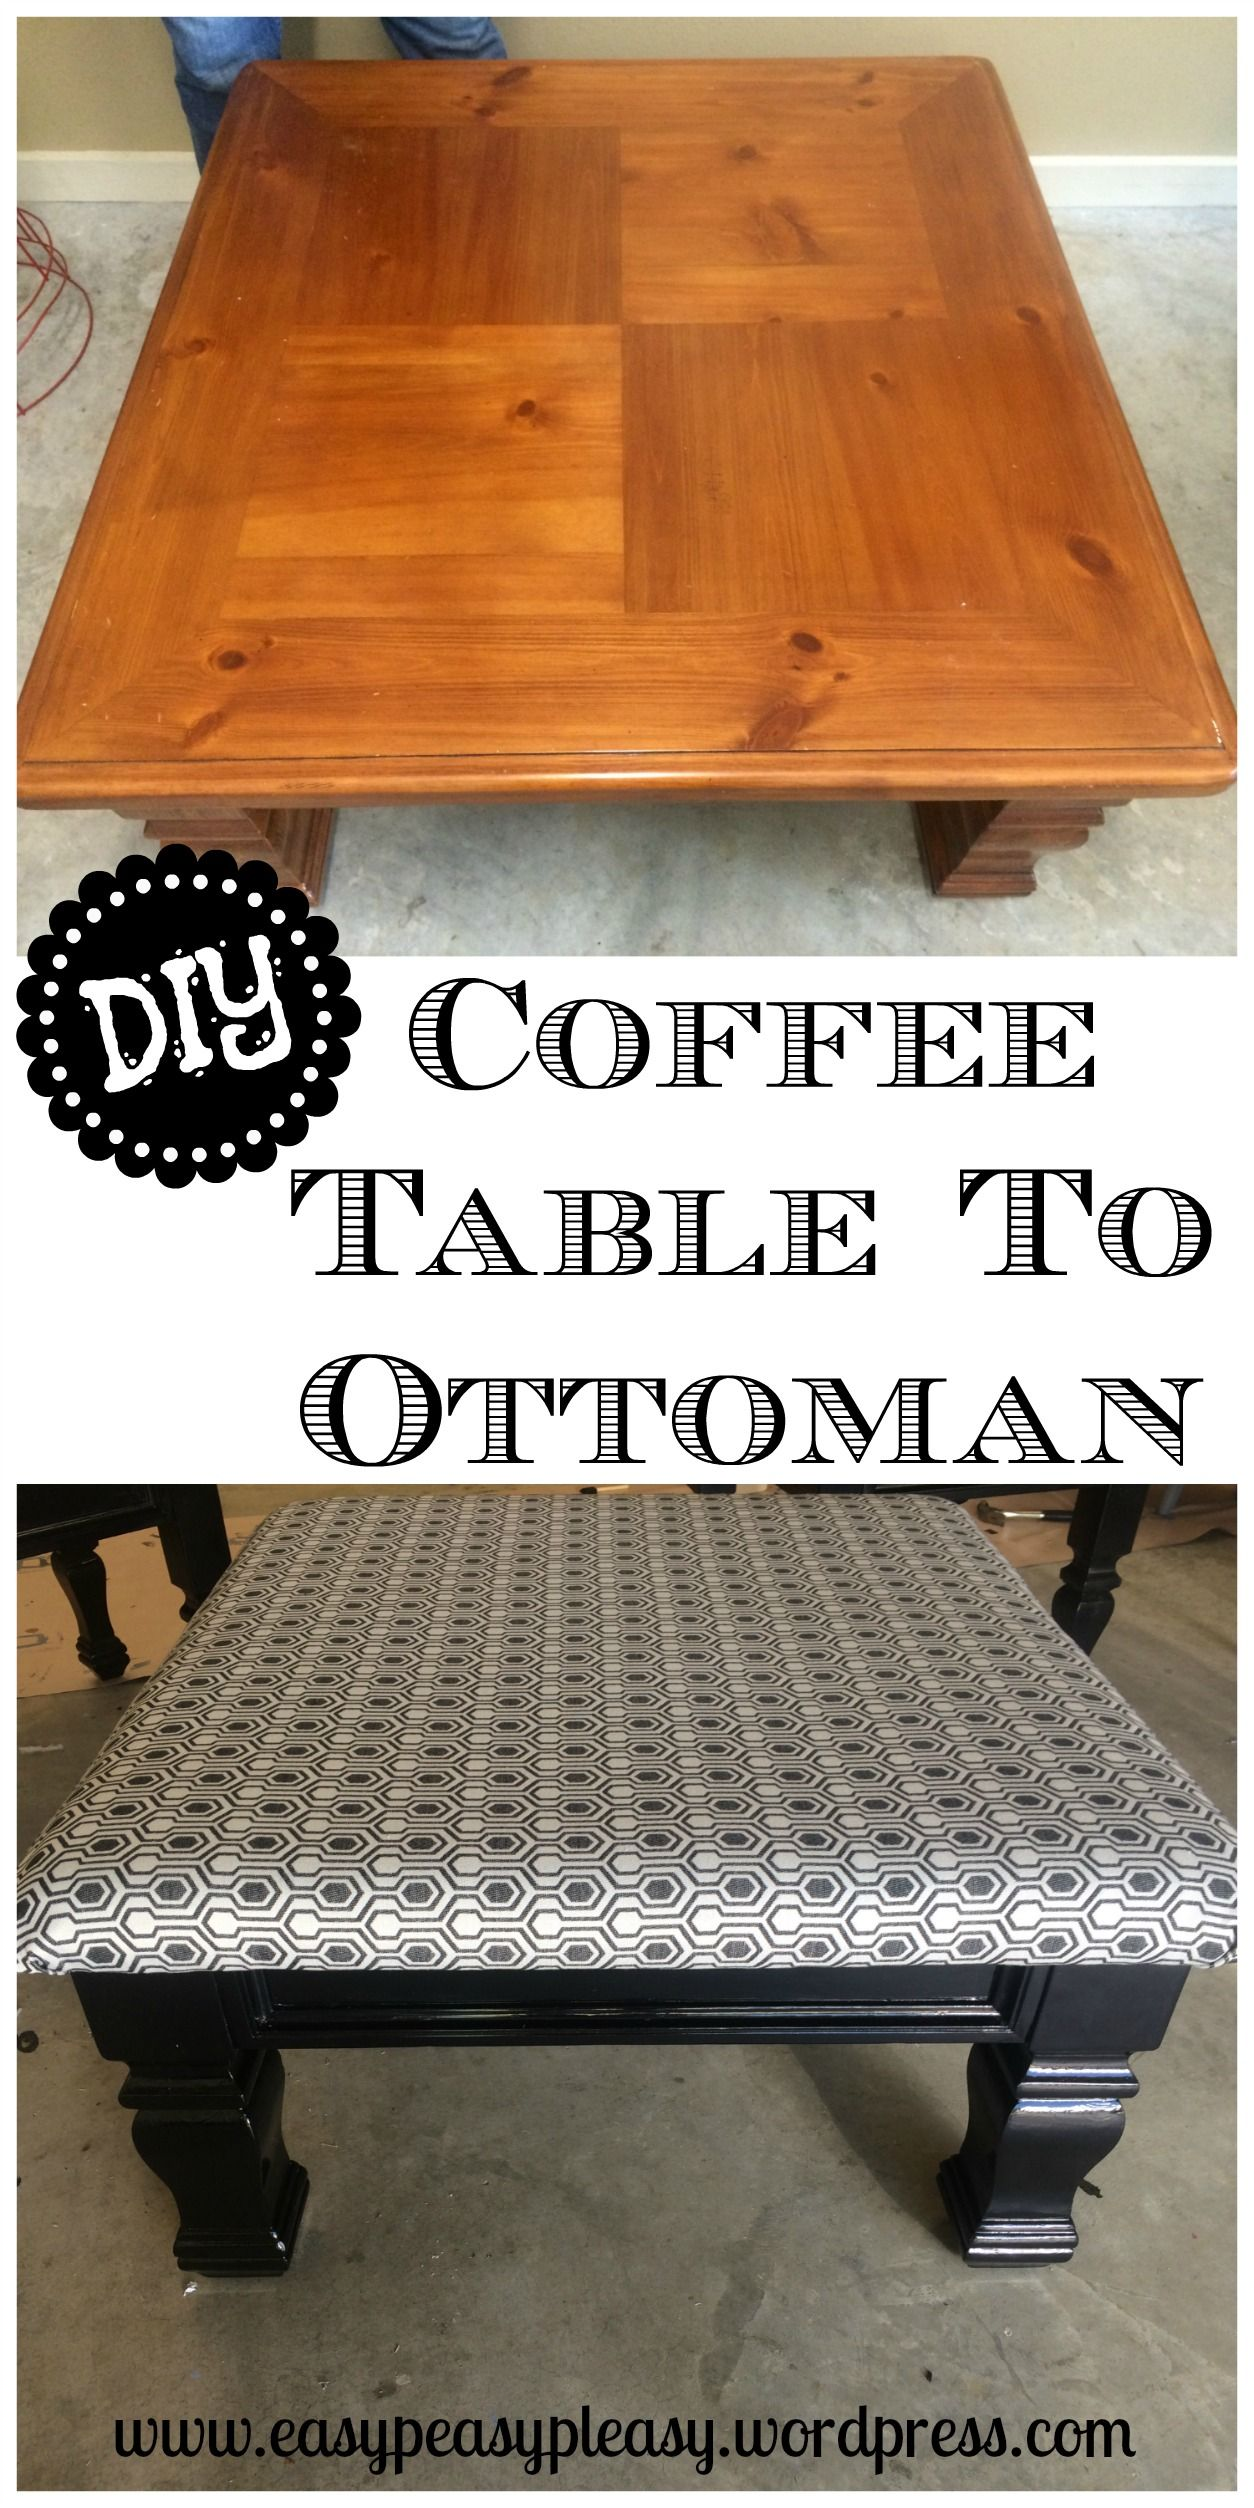 Diy table to ottoman and how to paint furniture without sanding diy table to ottoman and how to paint furniture without sanding geotapseo Images